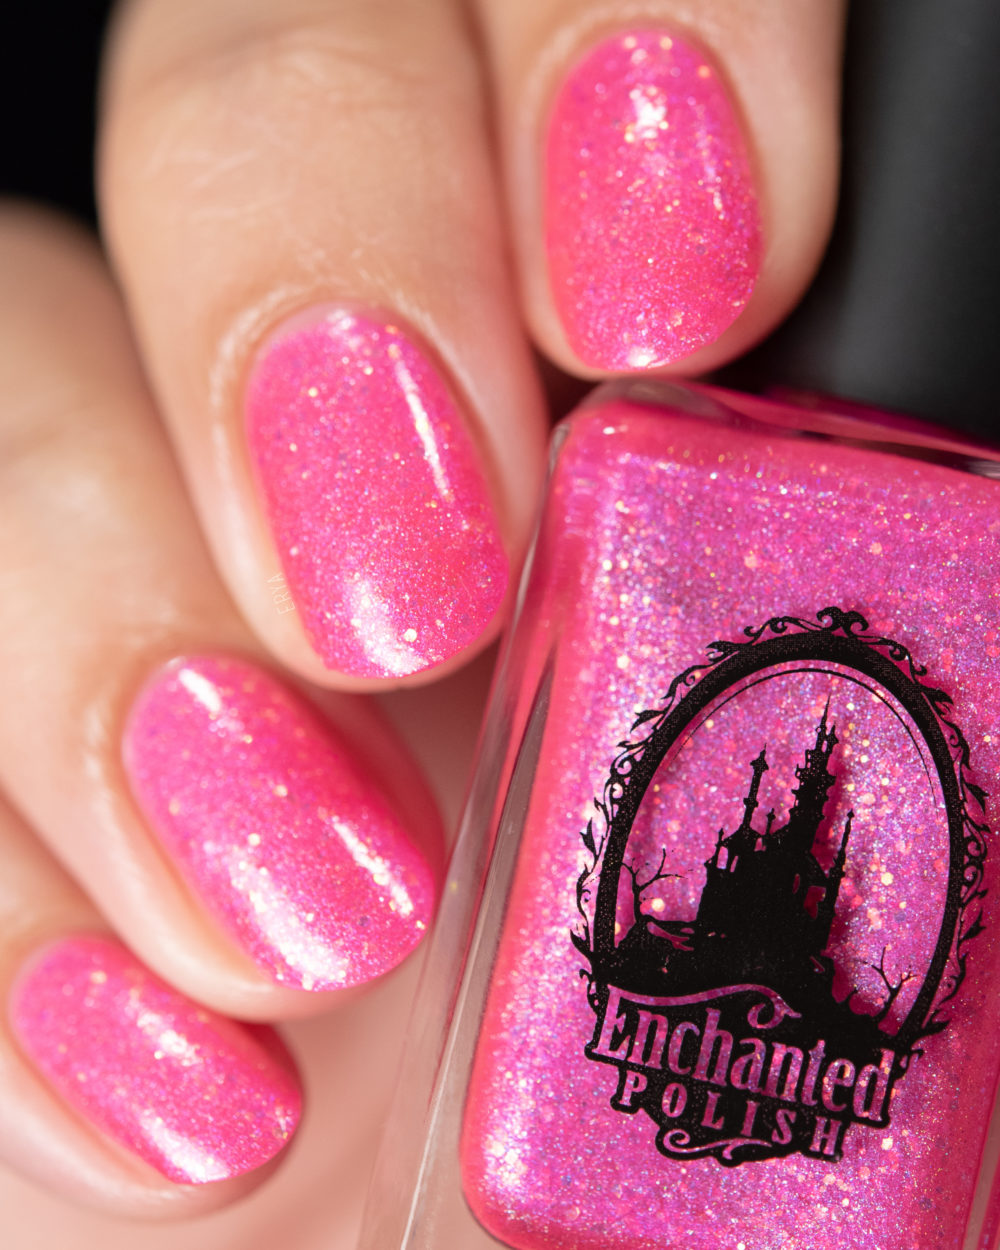 Enchanted_Polish-Opalicious-3